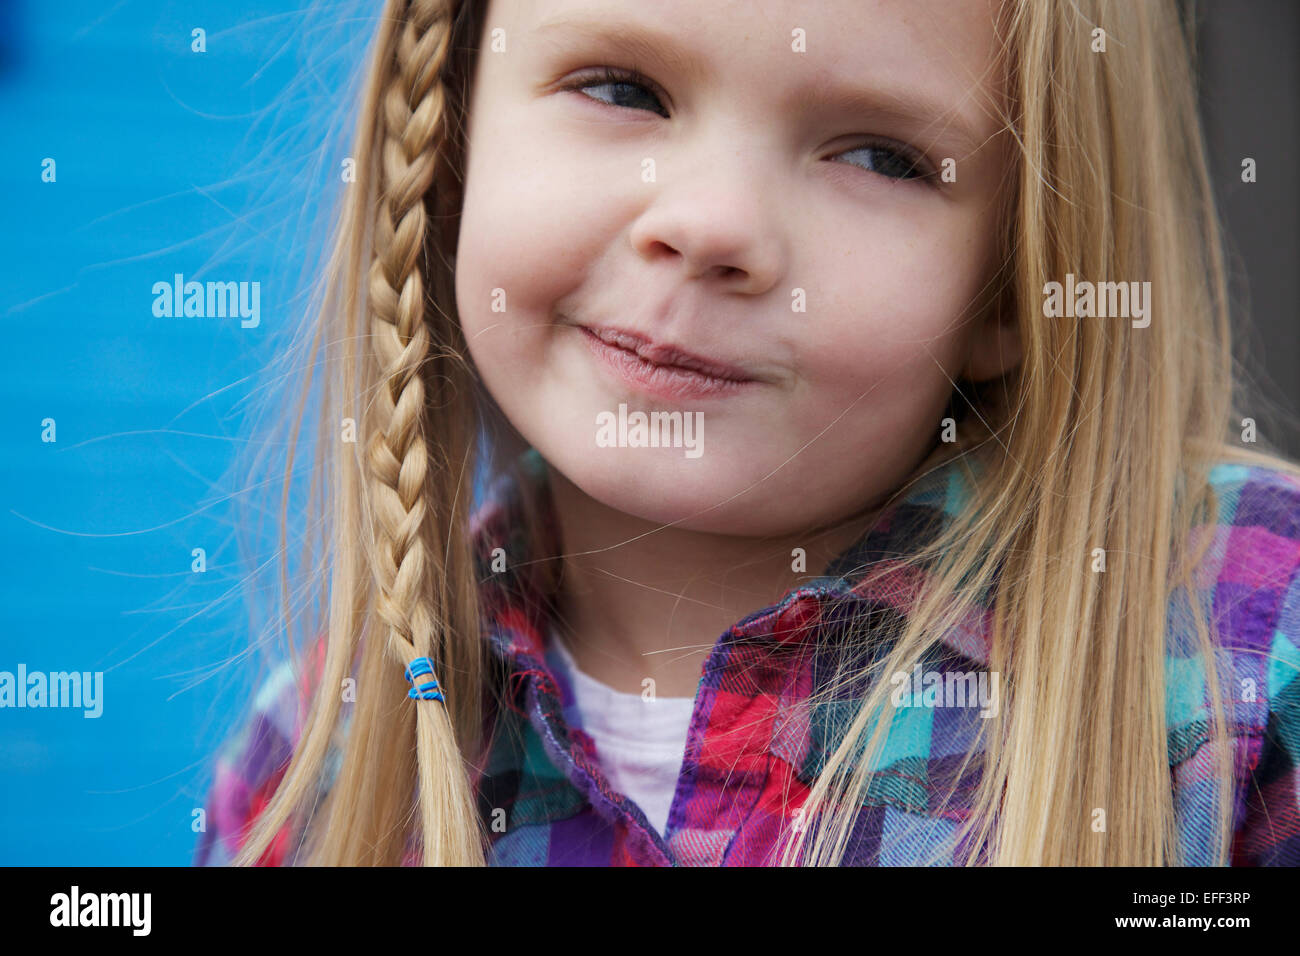 Young blonge girl with braid smirking. - Stock Image